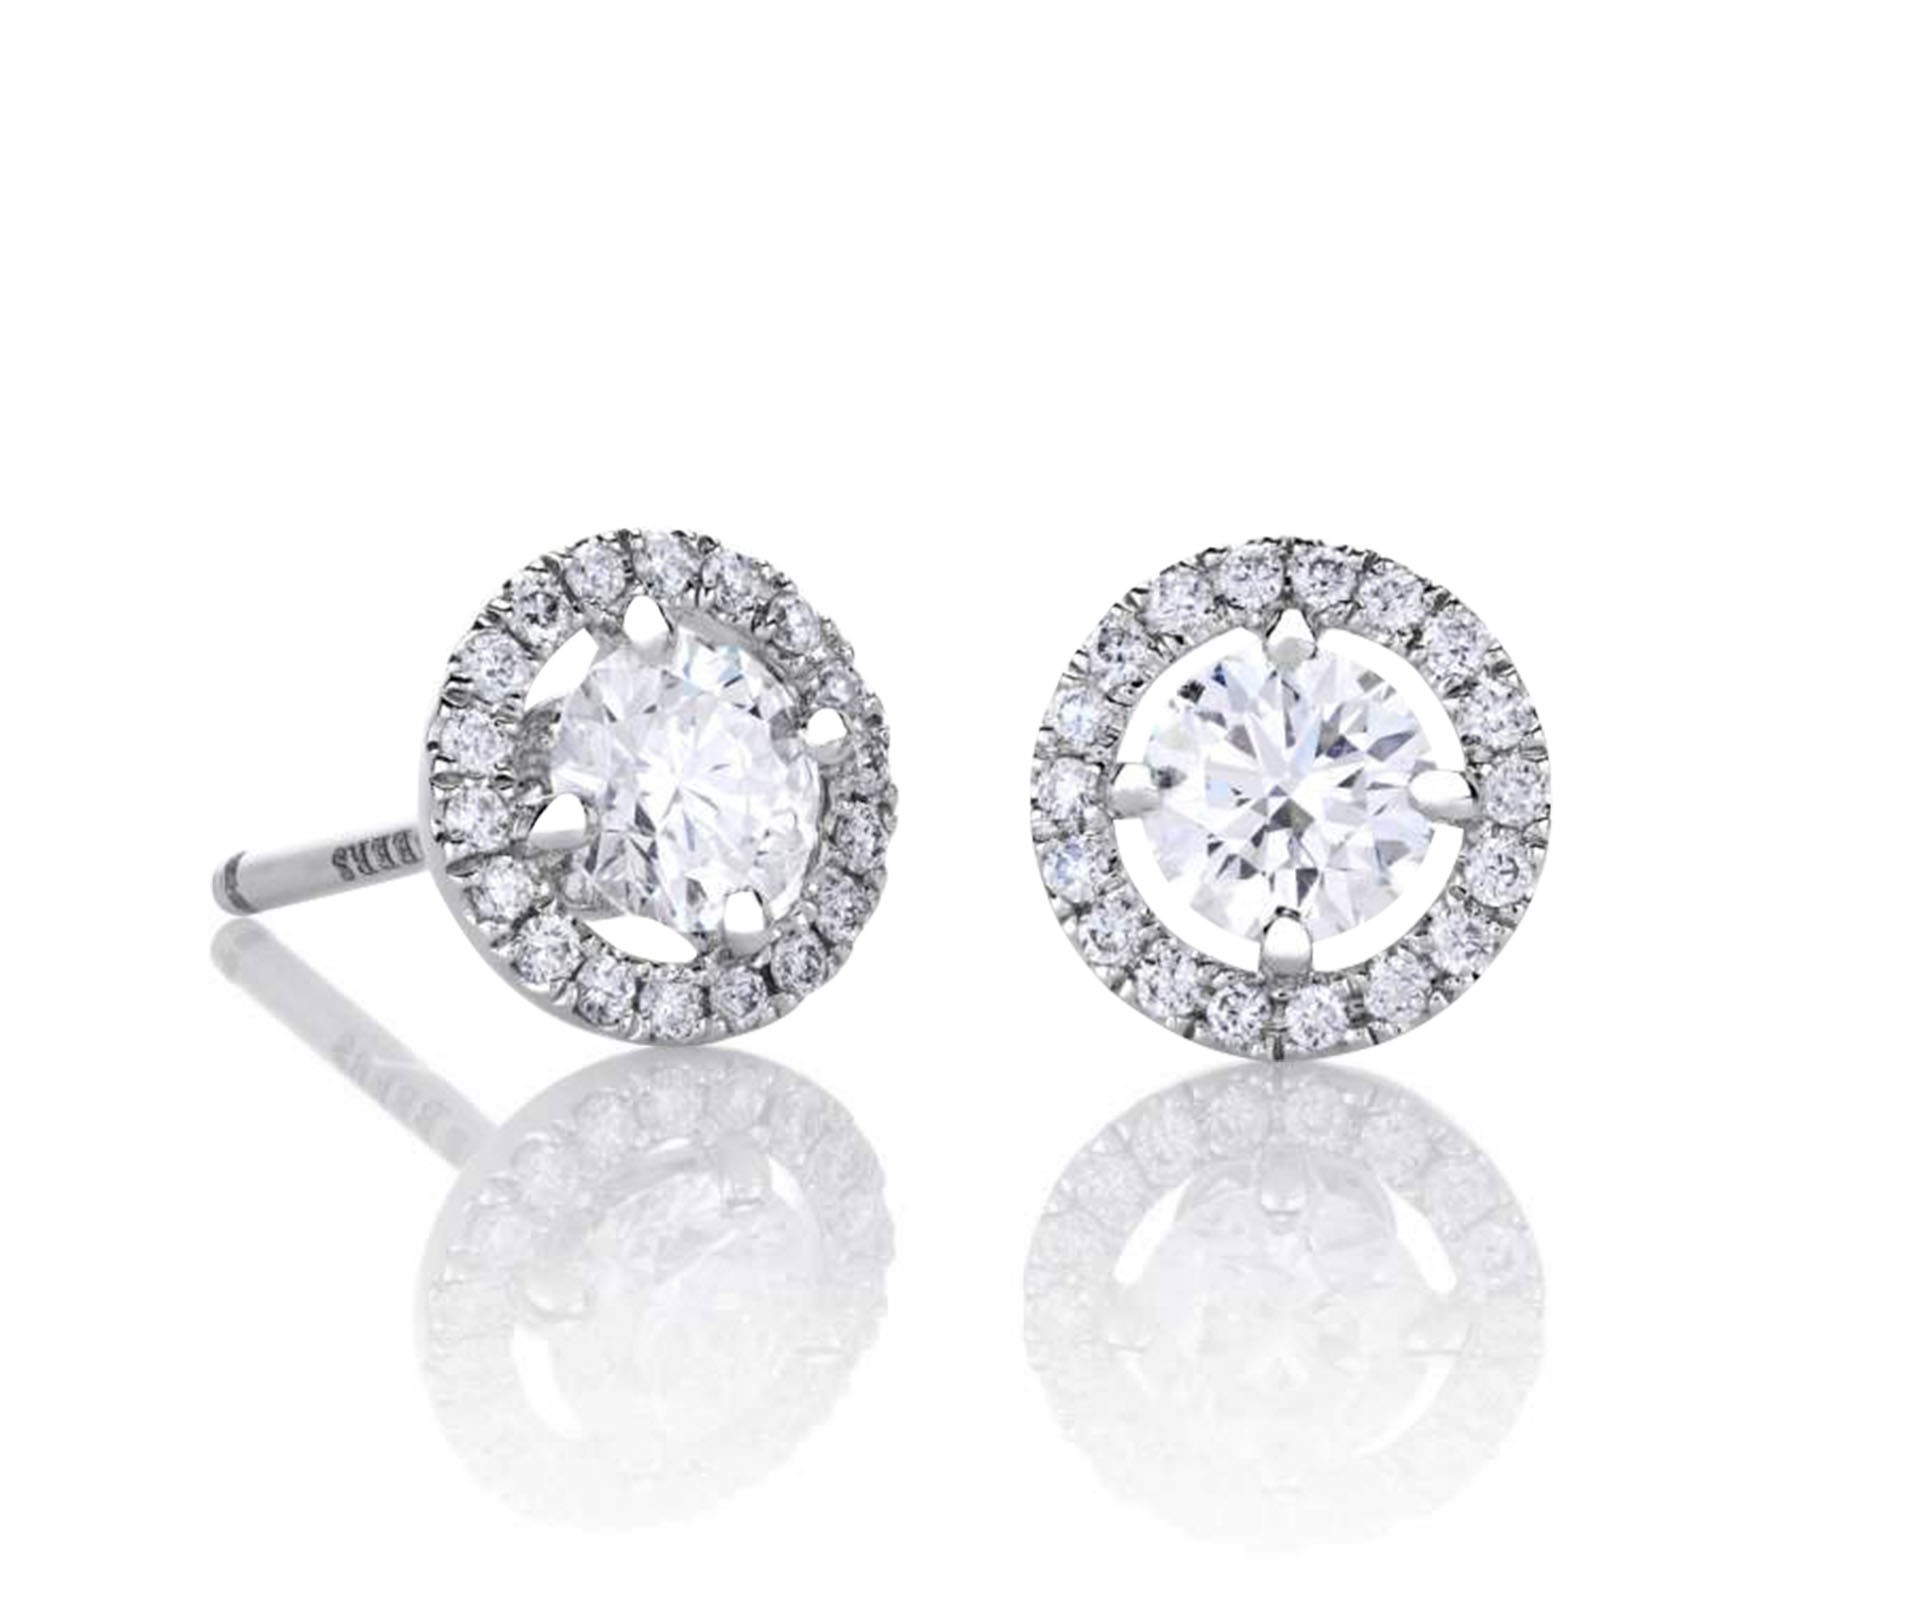 platinum pear certified studs jewellery gia diamond shape drop in gold earrings halo